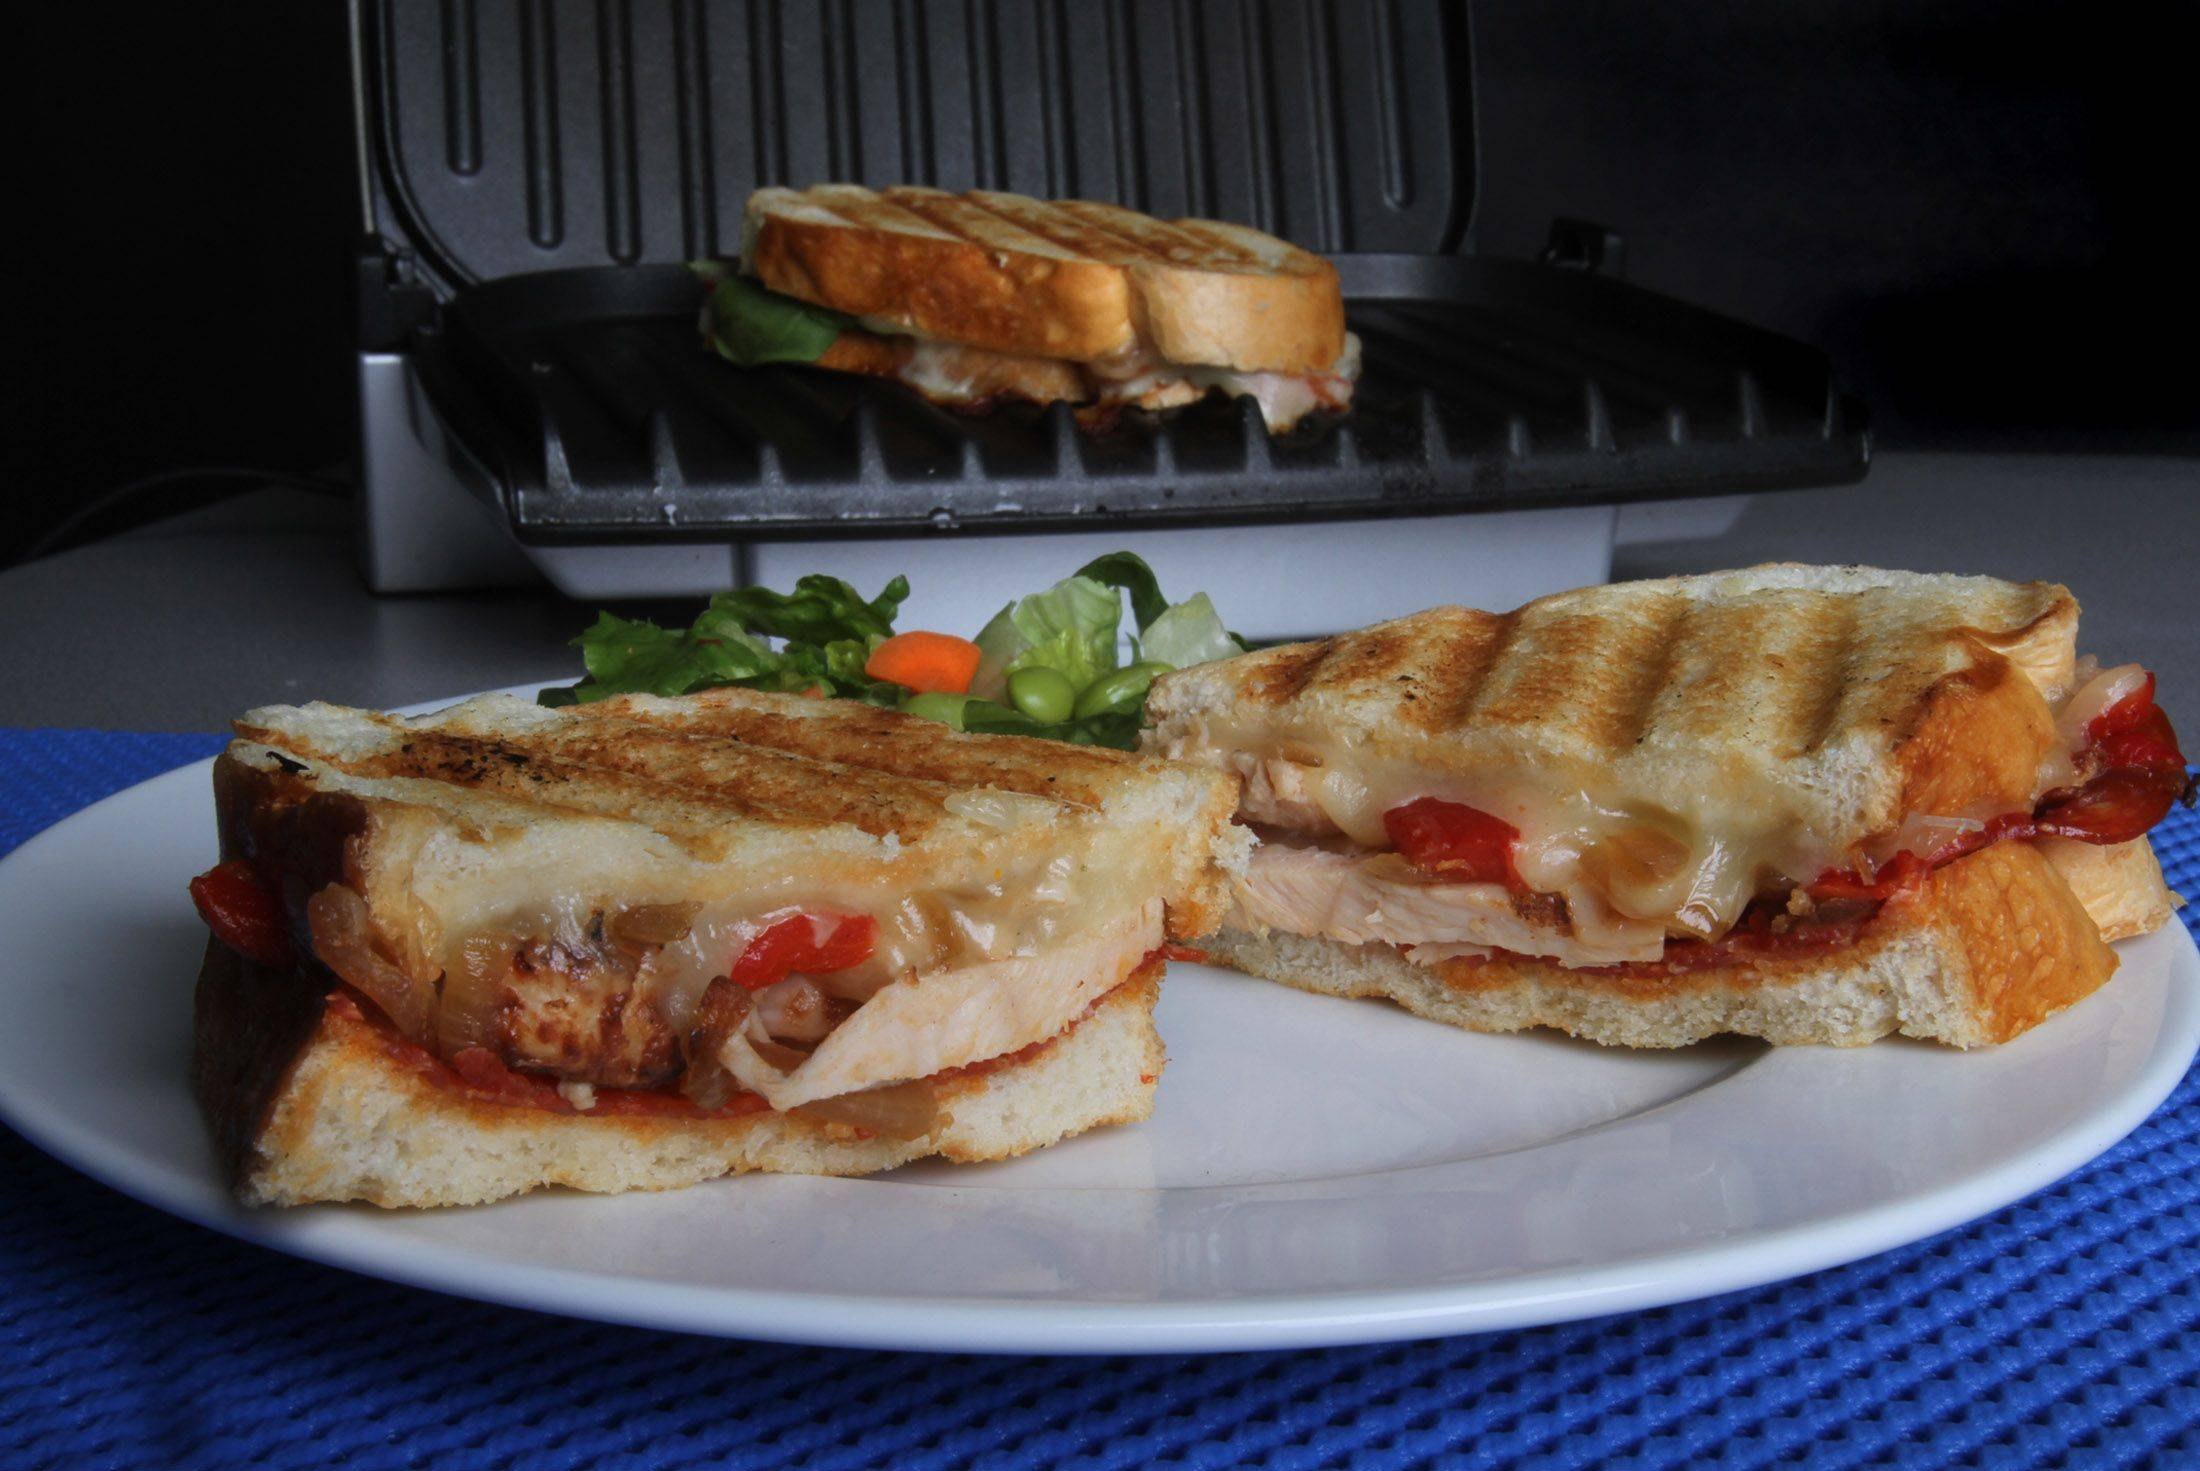 A countertop grill works great for making Peppy Chicken Paninis, but you can use a panini press if you have one.